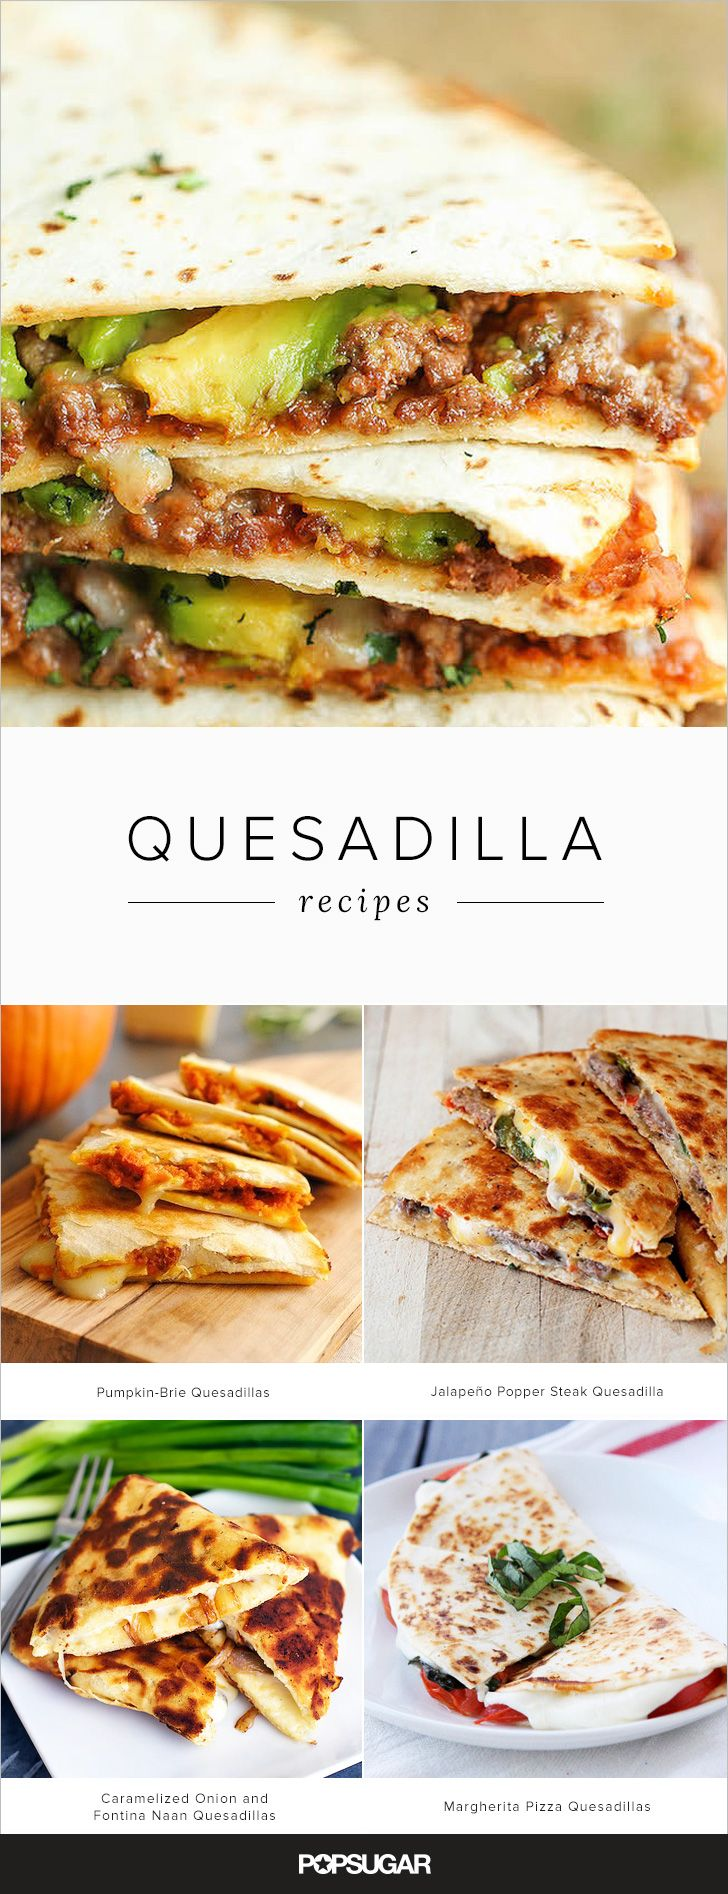 If you've been settling for cheese quesadillas all your life — enough is enough. These recipes will instantly up your snacking game with fillings like you've never seen before: pumpkin, brie, Thai chili sauce, and even naan bread make appearances. Hello (almost) instant flavor gratification!